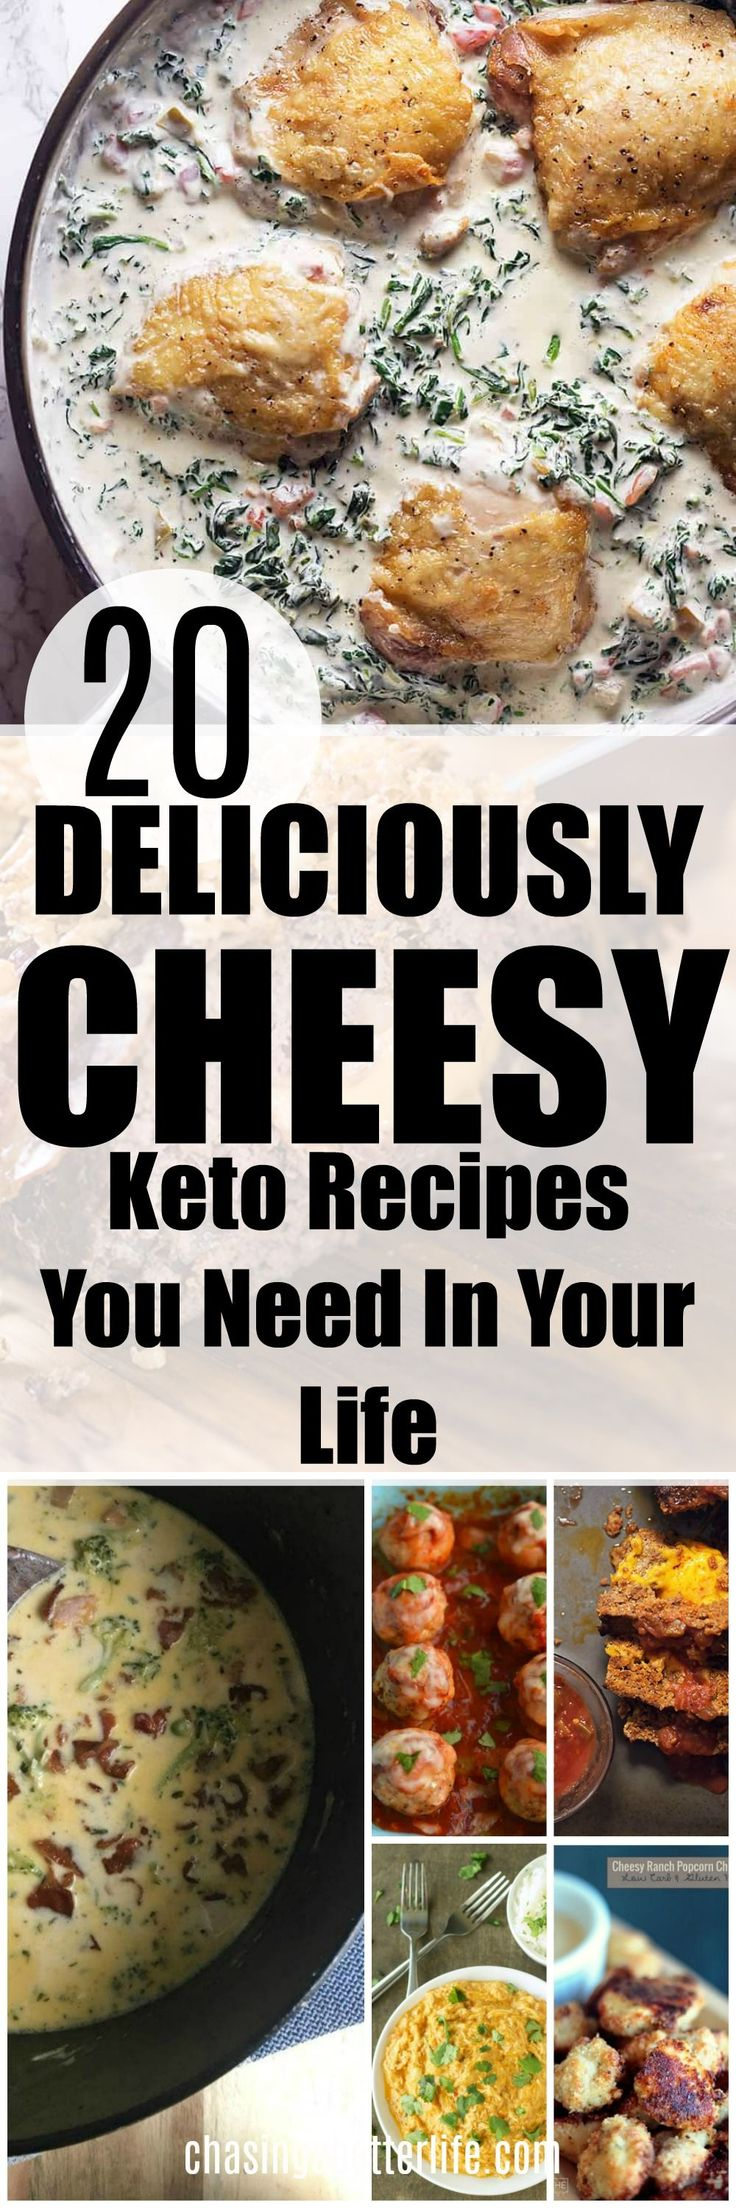 20 deliciously cheesy keto recipes you need in your life #keto #ketogenic #lowcarb